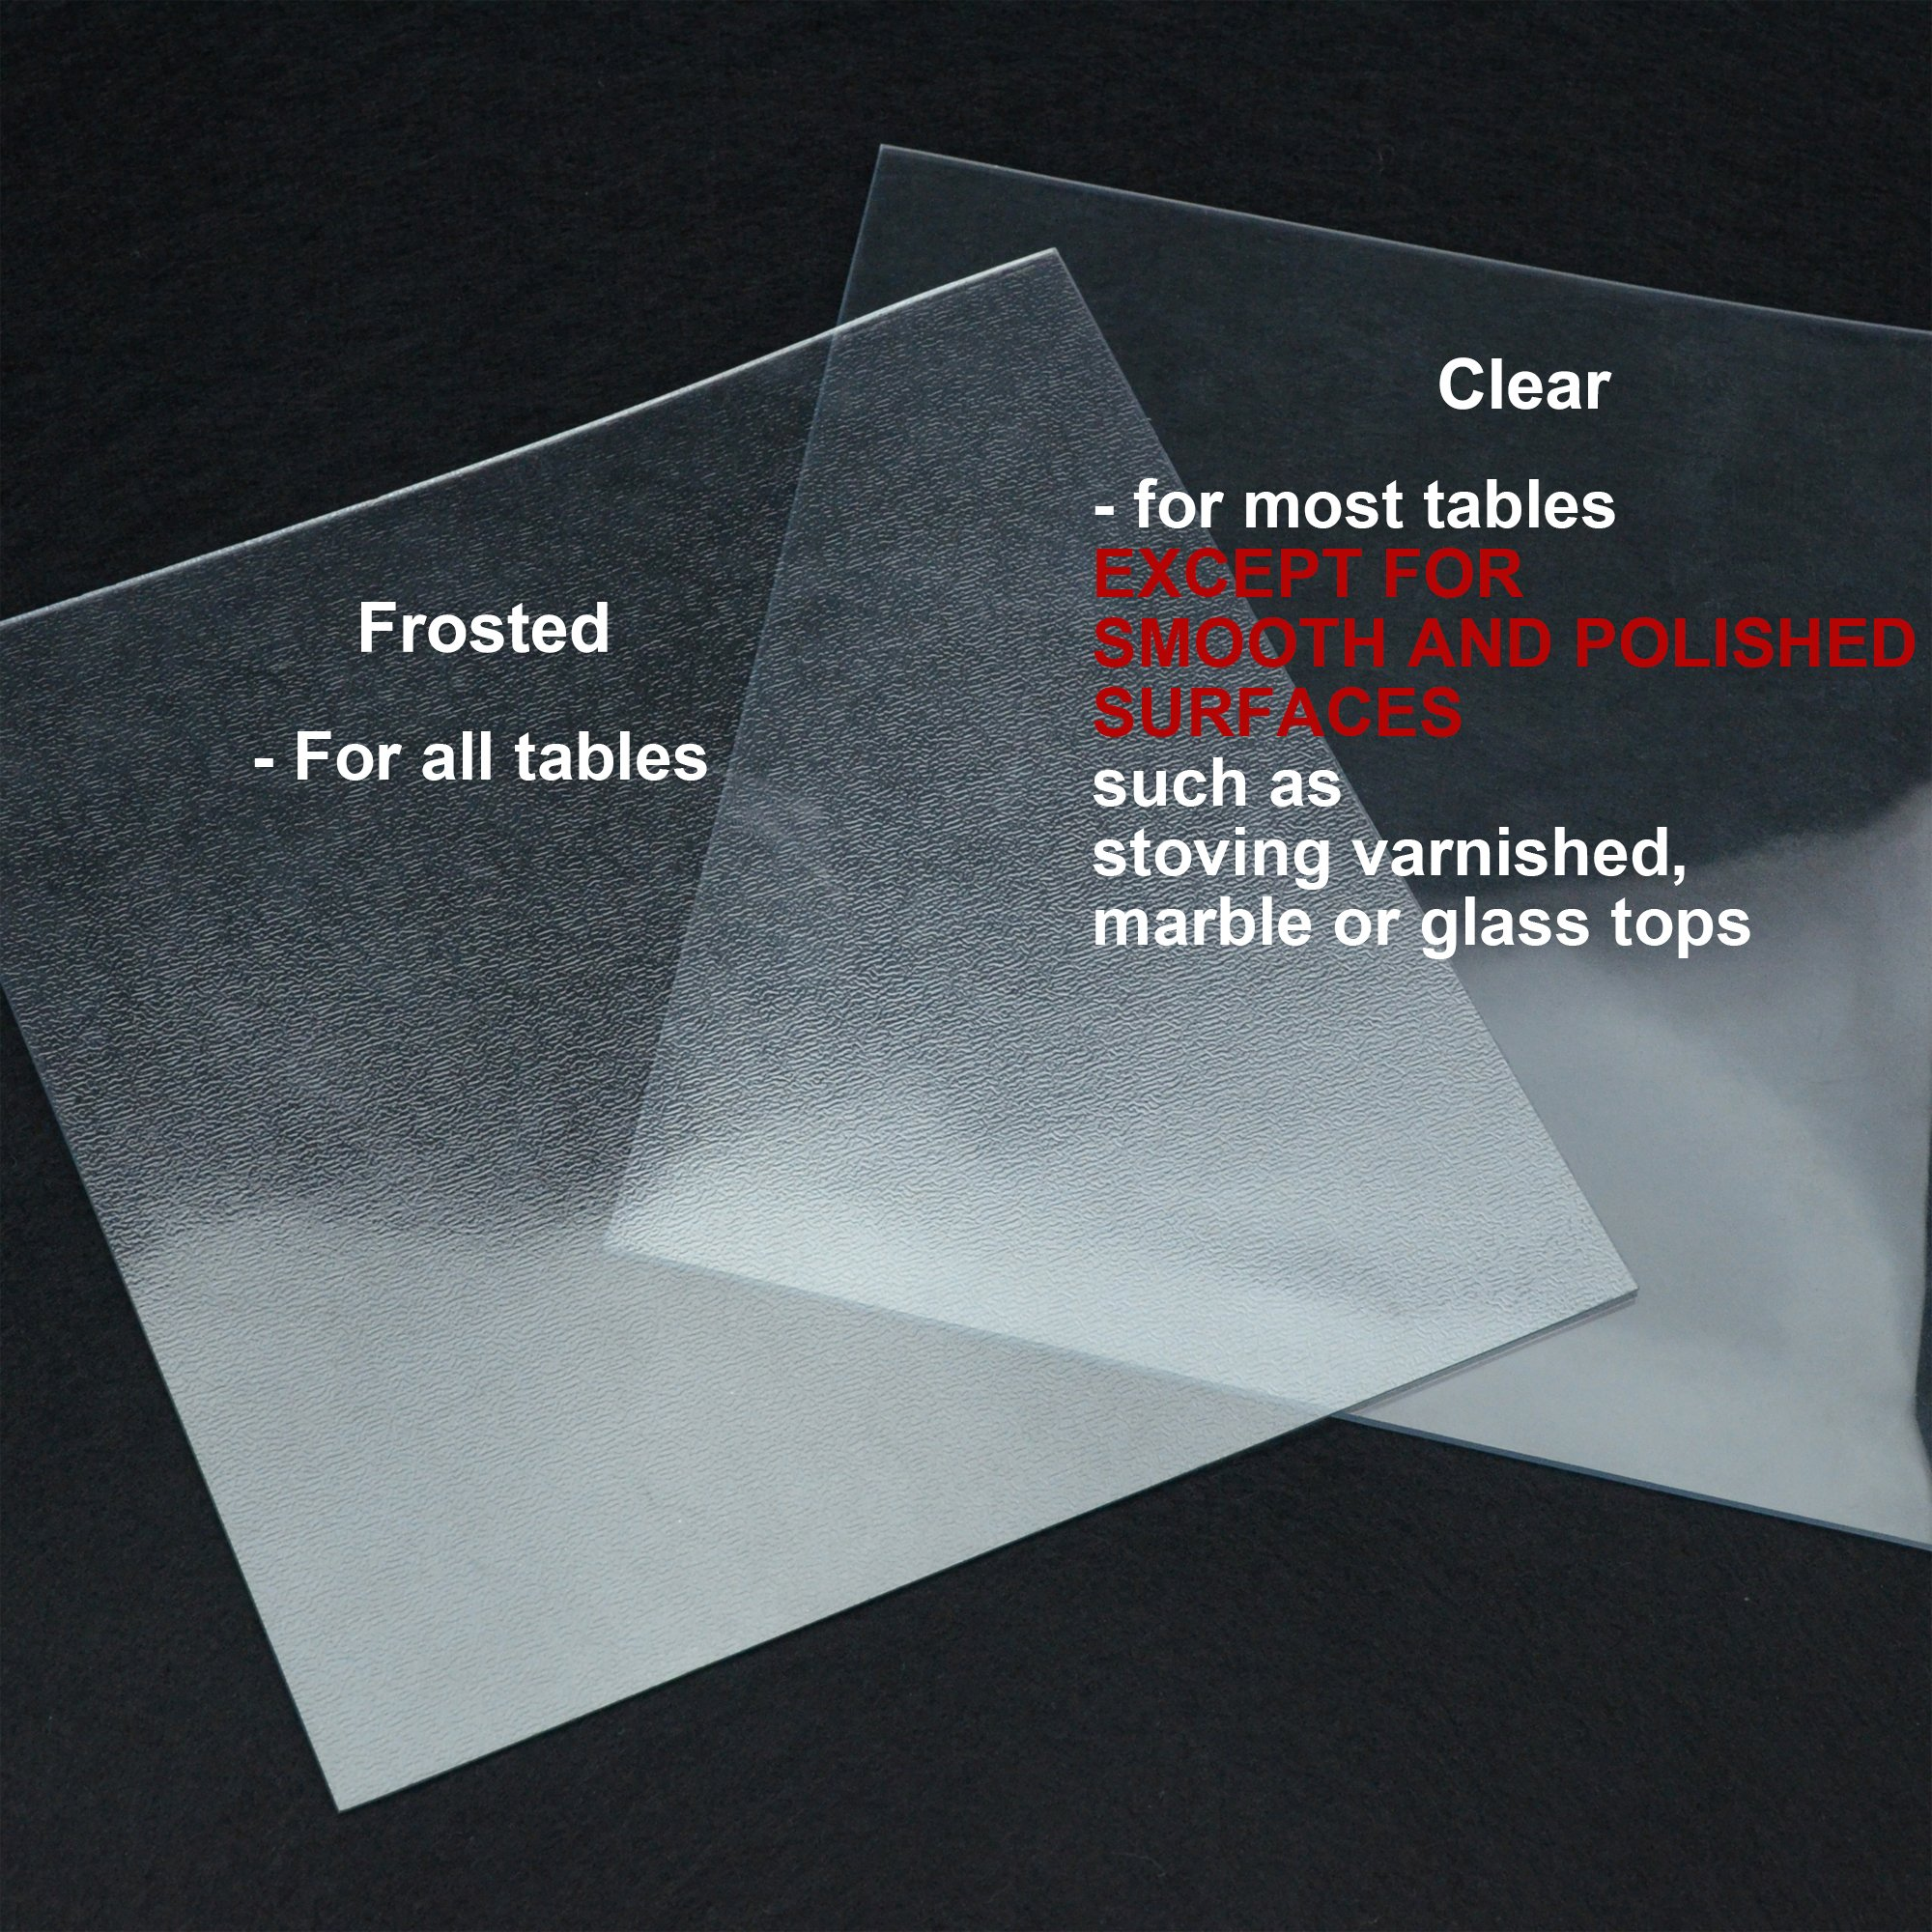 ETECHMART Clear PVC Table Top Protector Round 2.0mm Multi Size Dia. 60 Inches Customized by ETECHMART (Image #8)